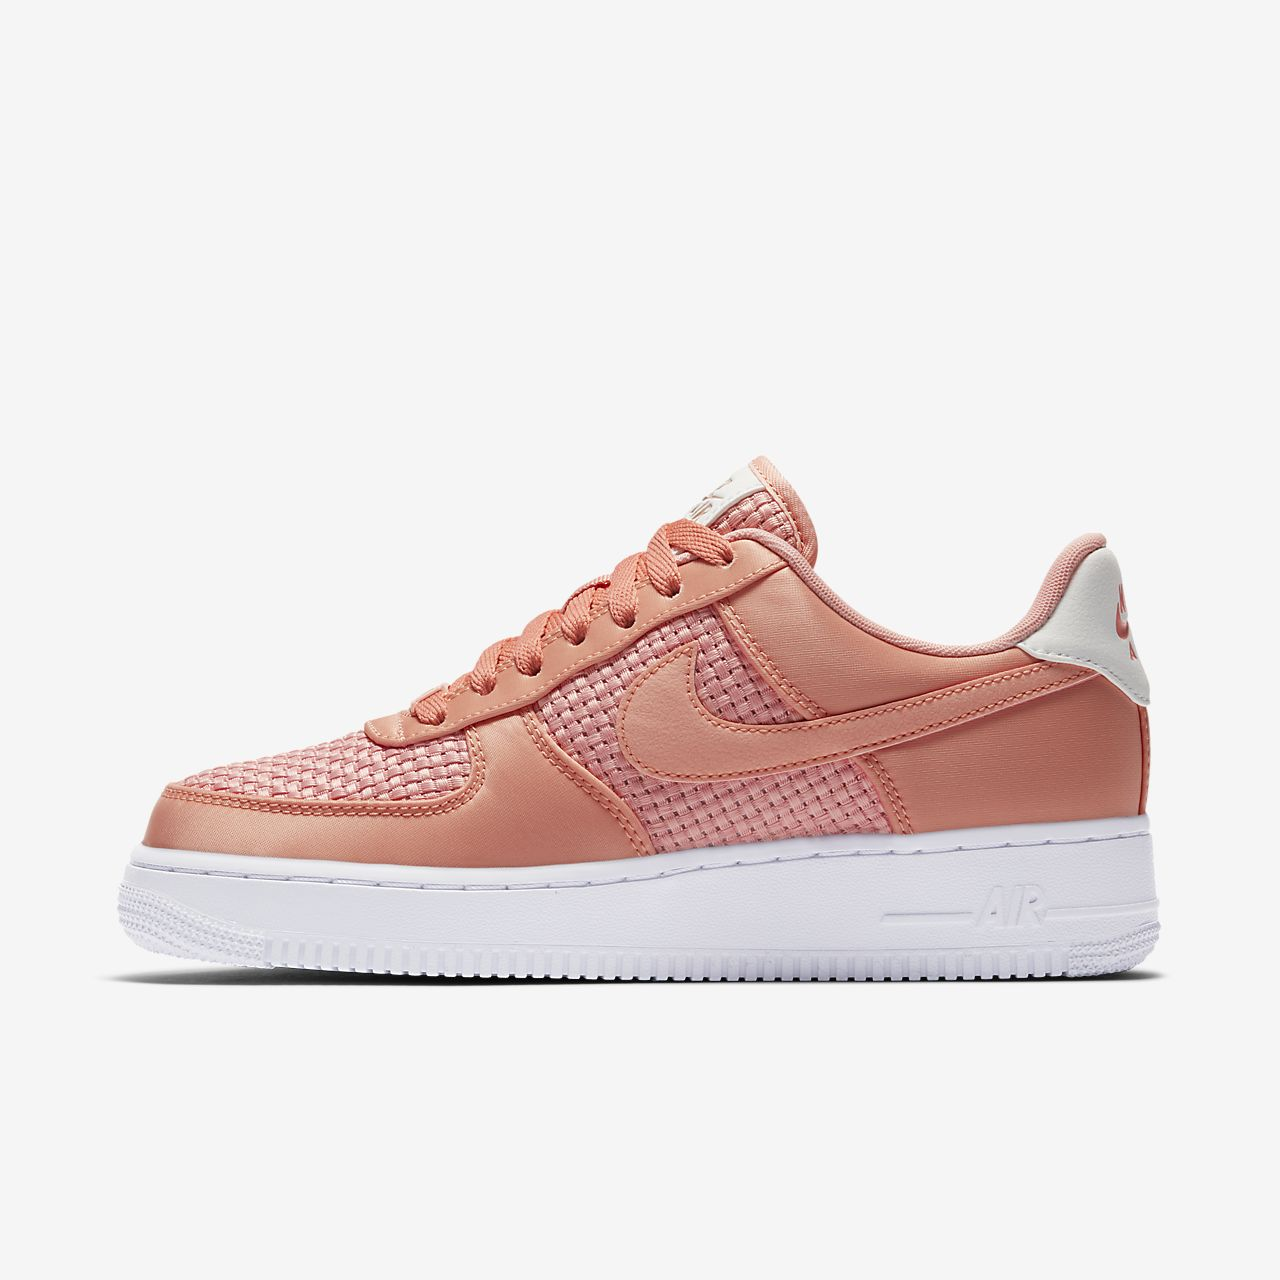 ... Nike Air Force 1 '07 SE Women's Shoe